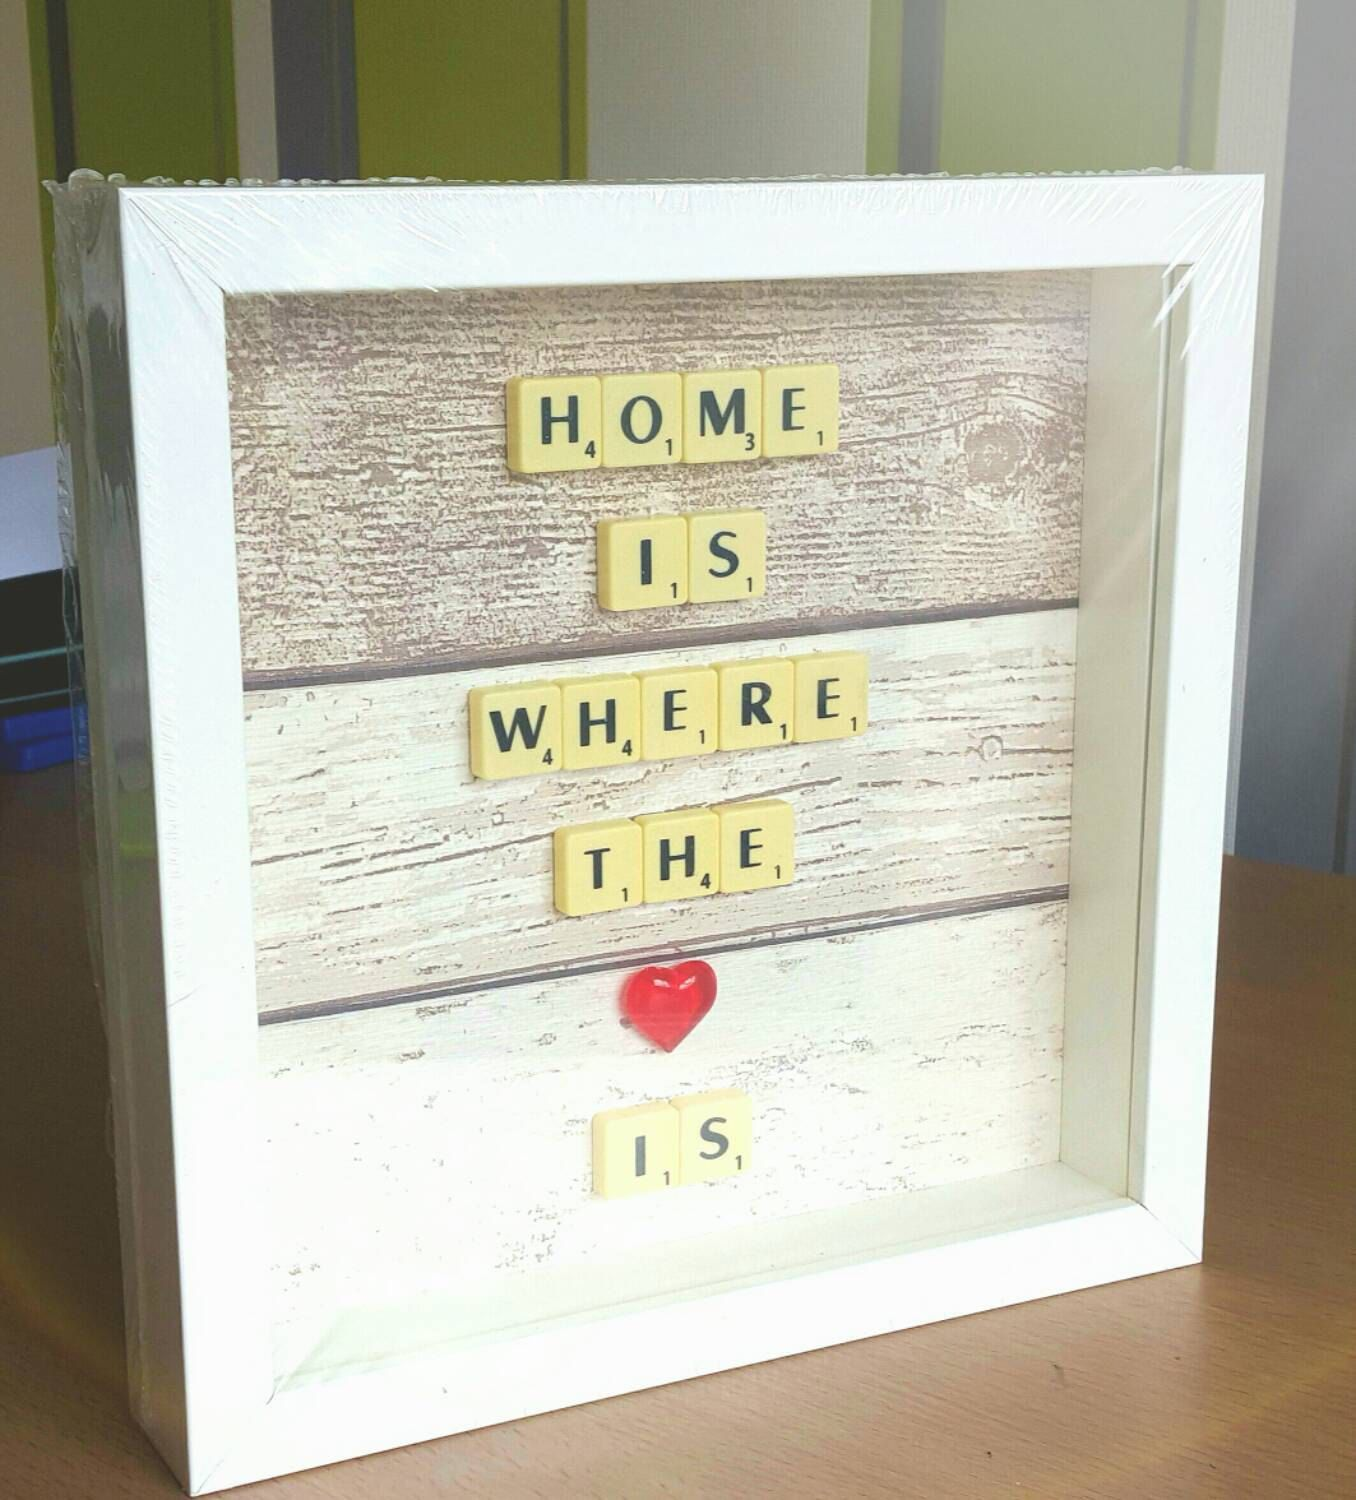 HOME Is Where The HEART Is Display Picture Scrabble Word New House Gift Family Friends Keepsake